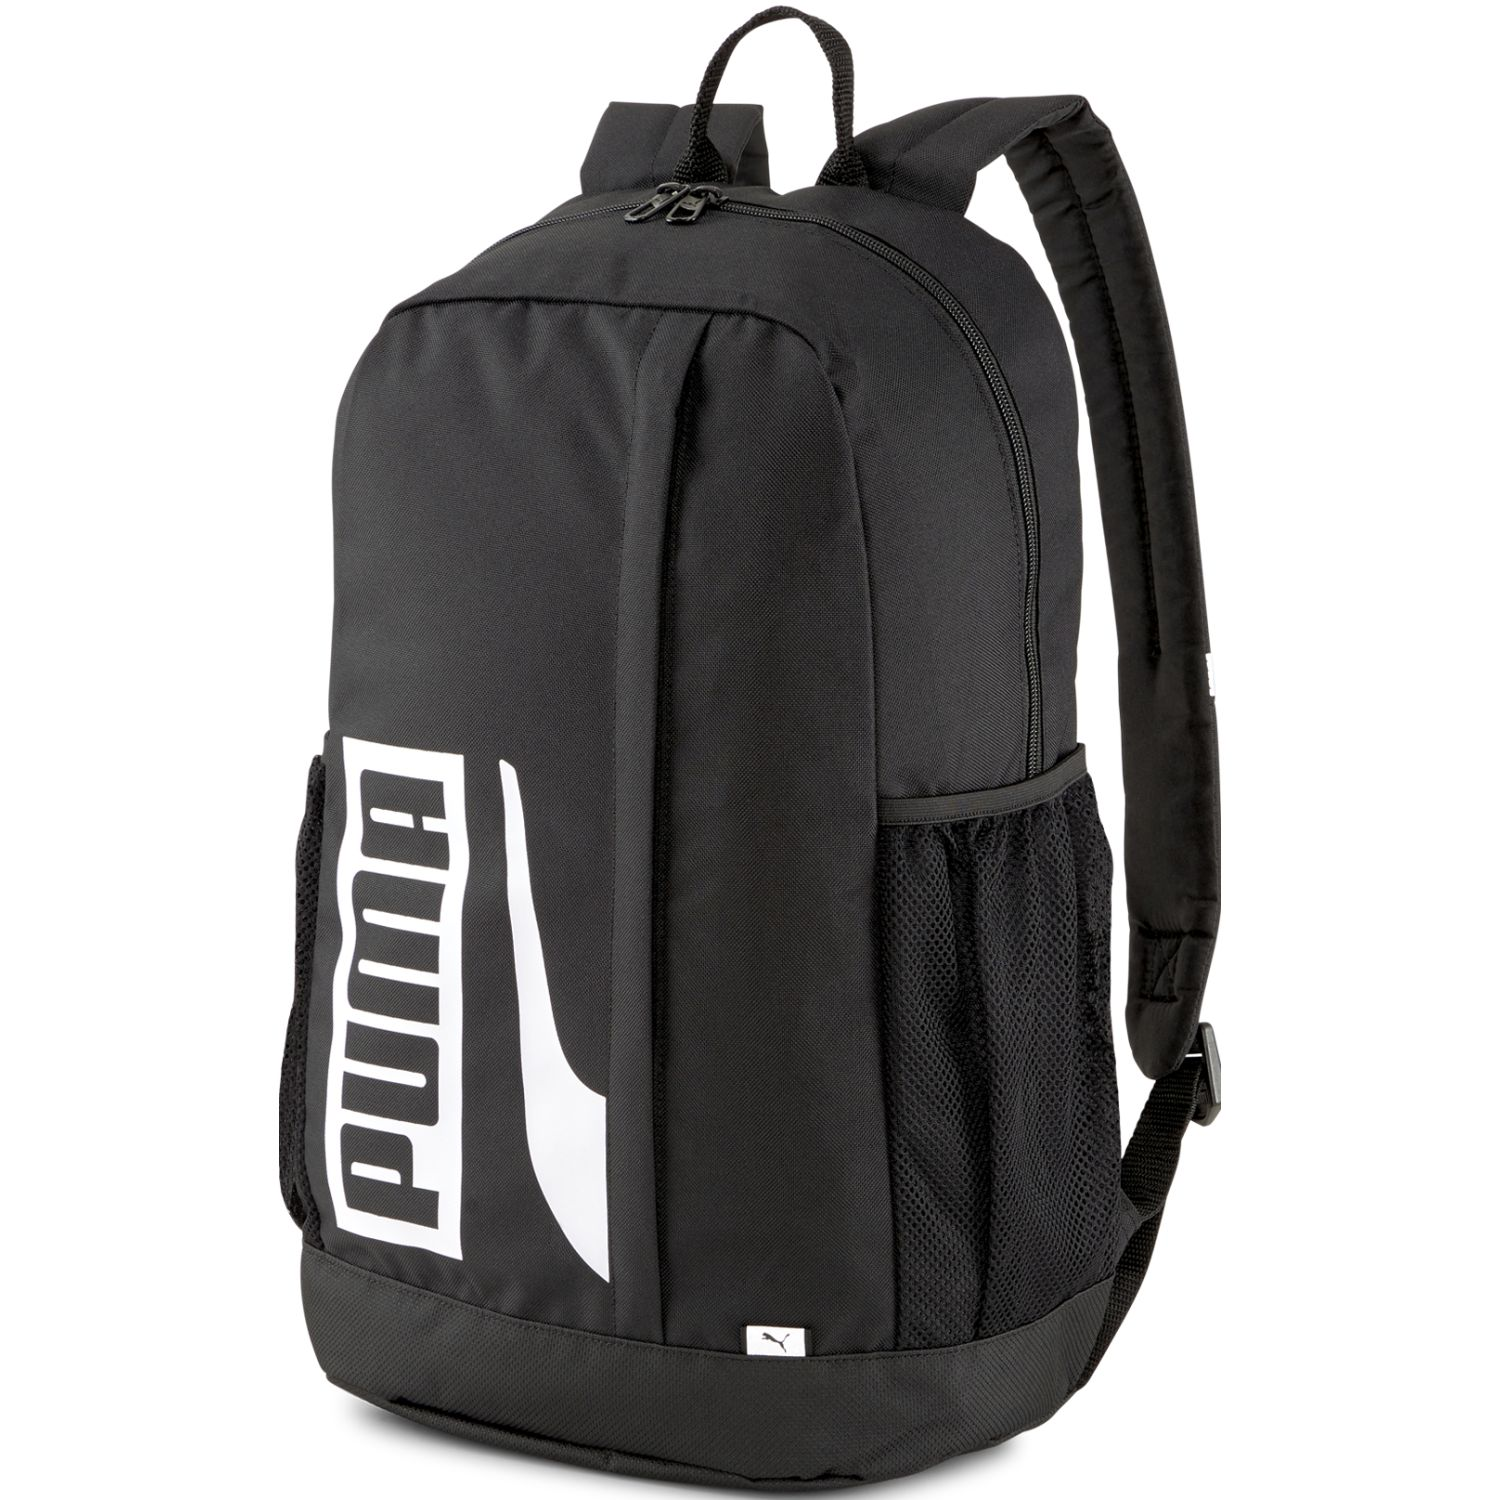 Puma Puma Plus Backpack Ii Negro Mochilas Multipropósitos